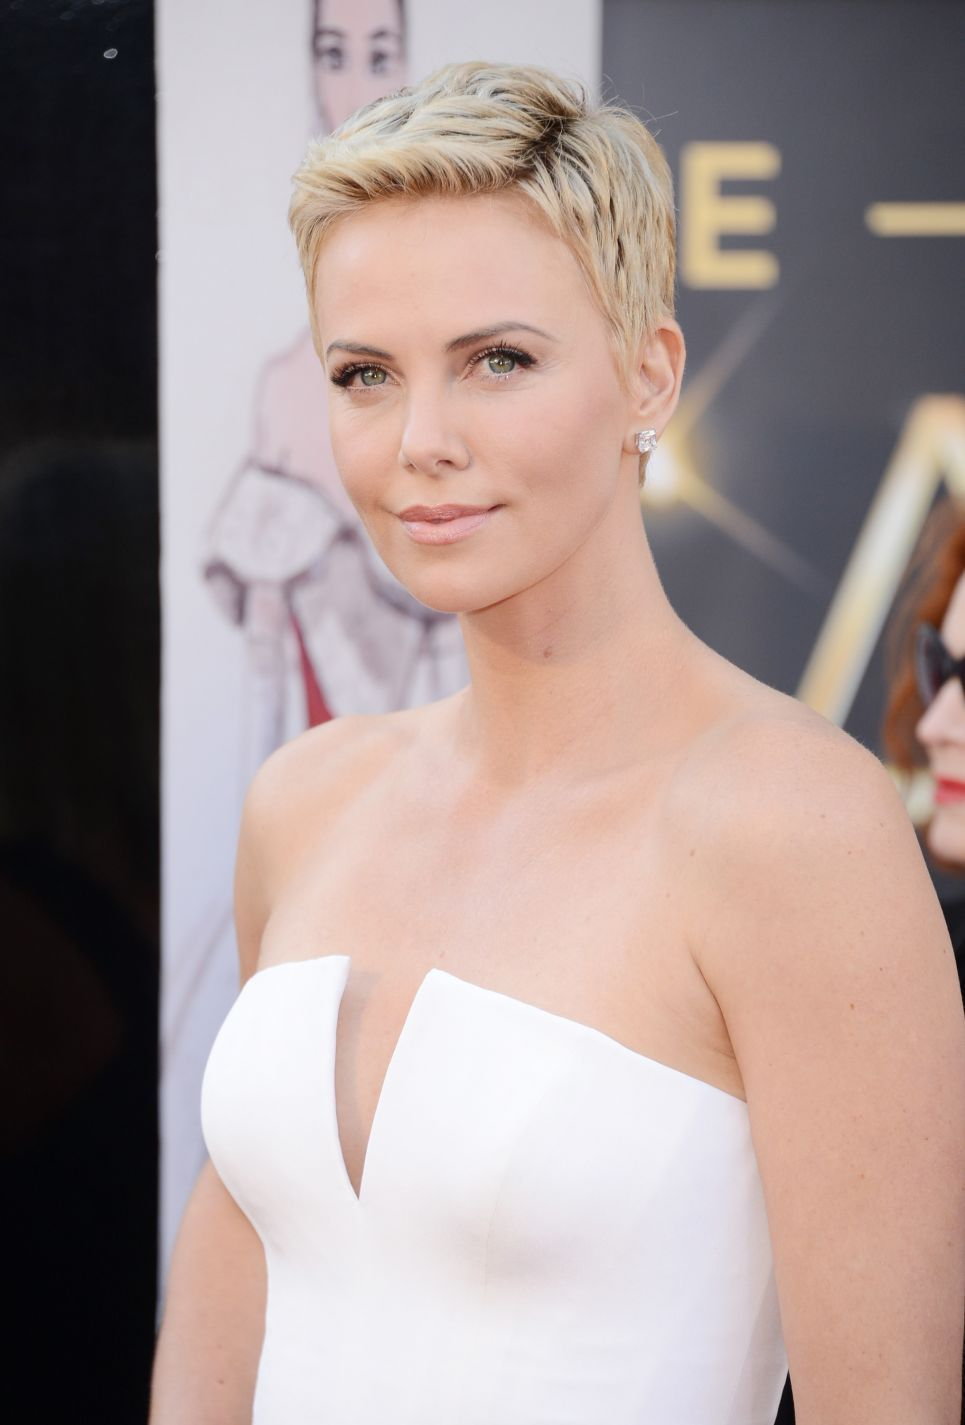 Charlize Theron arrives at the 85th Annual Academy Awards at Dolby Theatre in Los Angeles ,February 2013. #Oscars2013